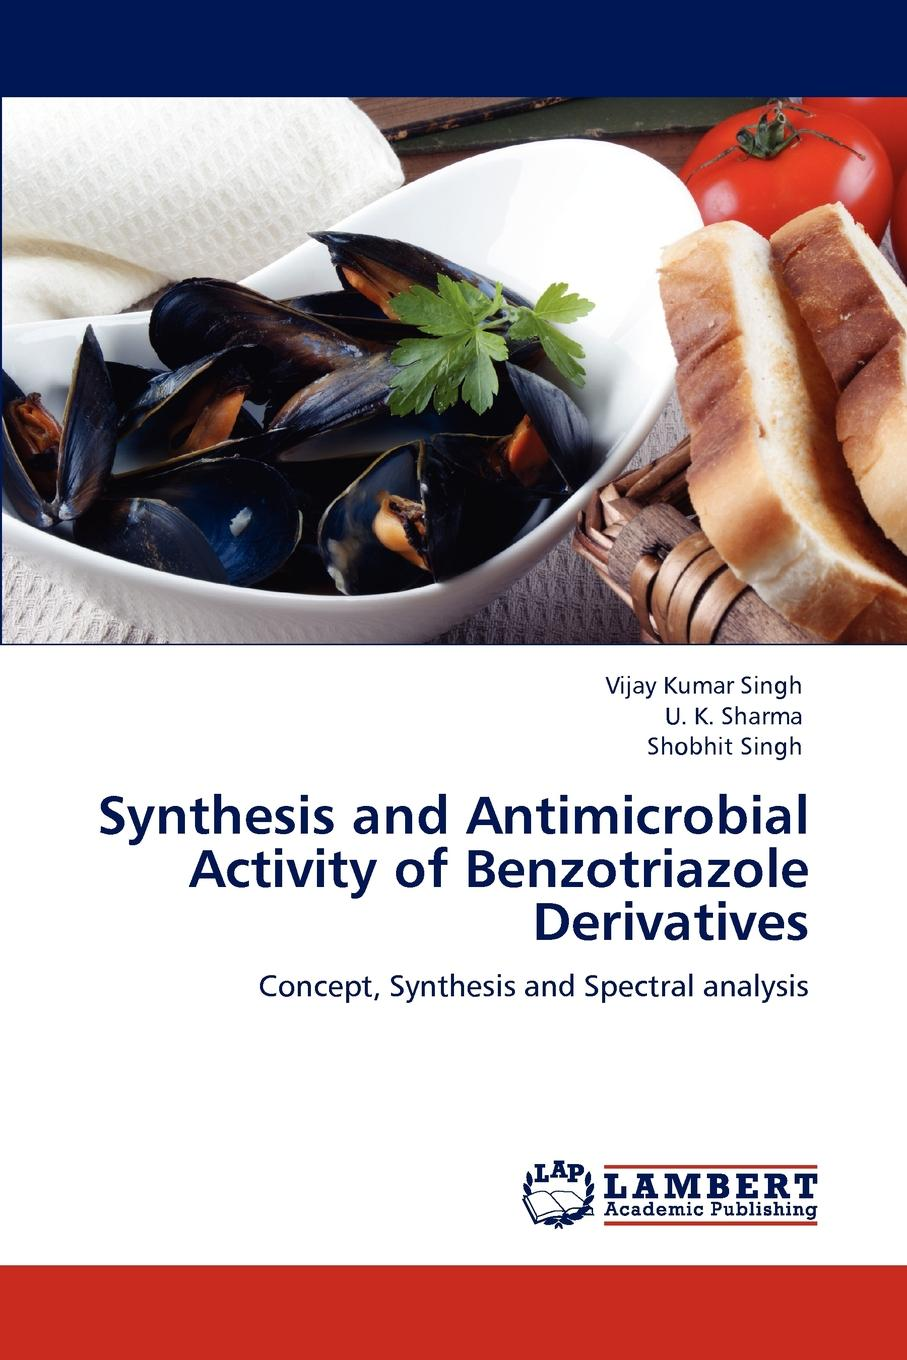 Vijay Kumar Singh, U. K. Sharma, Shobhit Singh Synthesis and Antimicrobial Activity of Benzotriazole Derivatives все цены